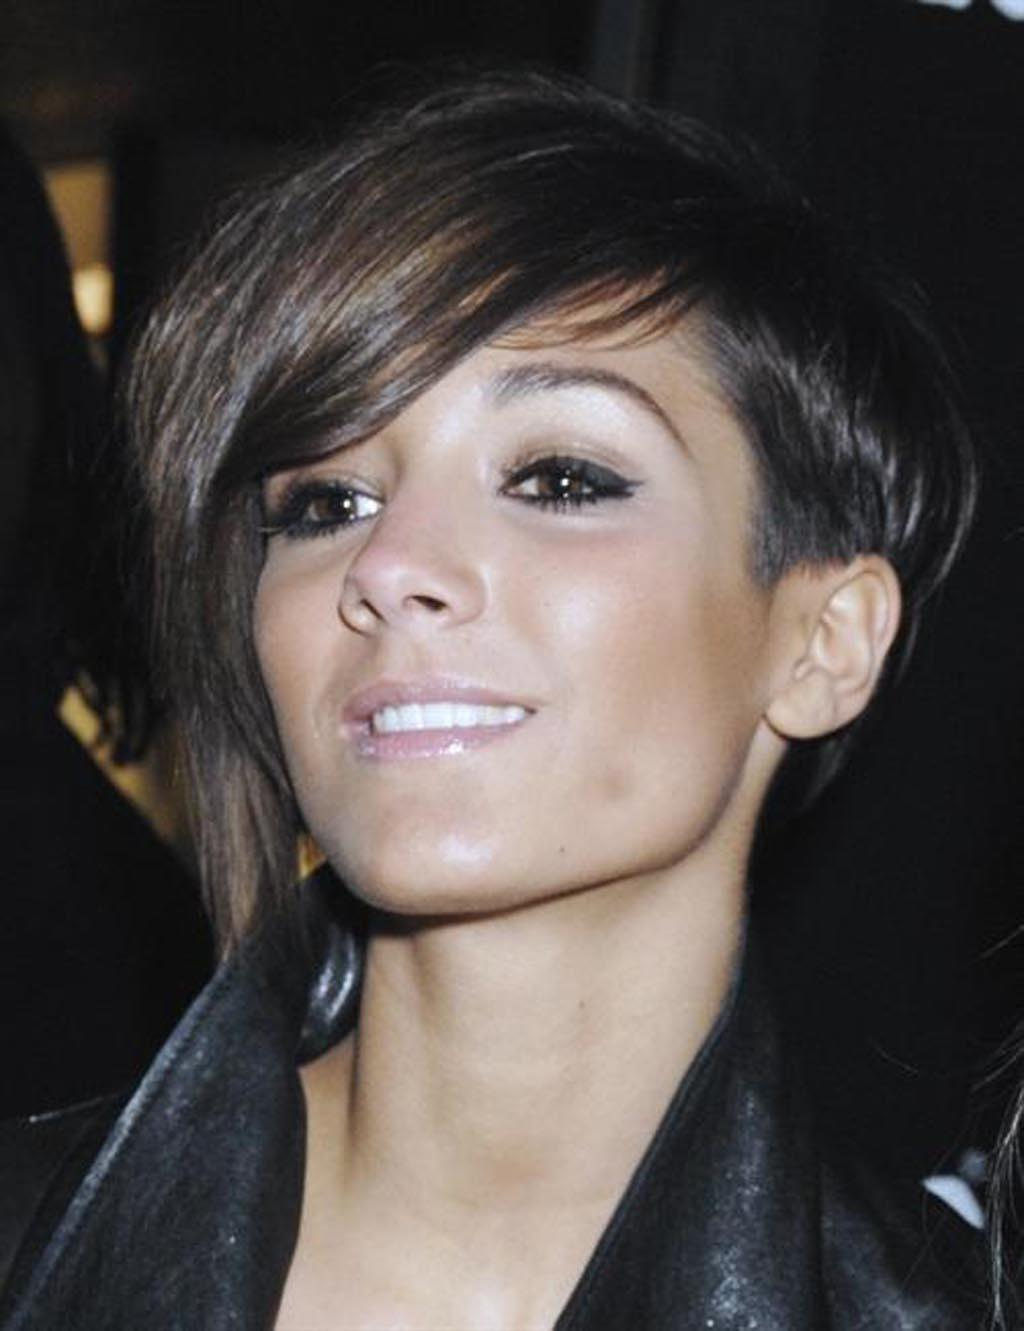 Hairstyle Pictures Of Frankie Sandford Trendy Hairstyles 2014